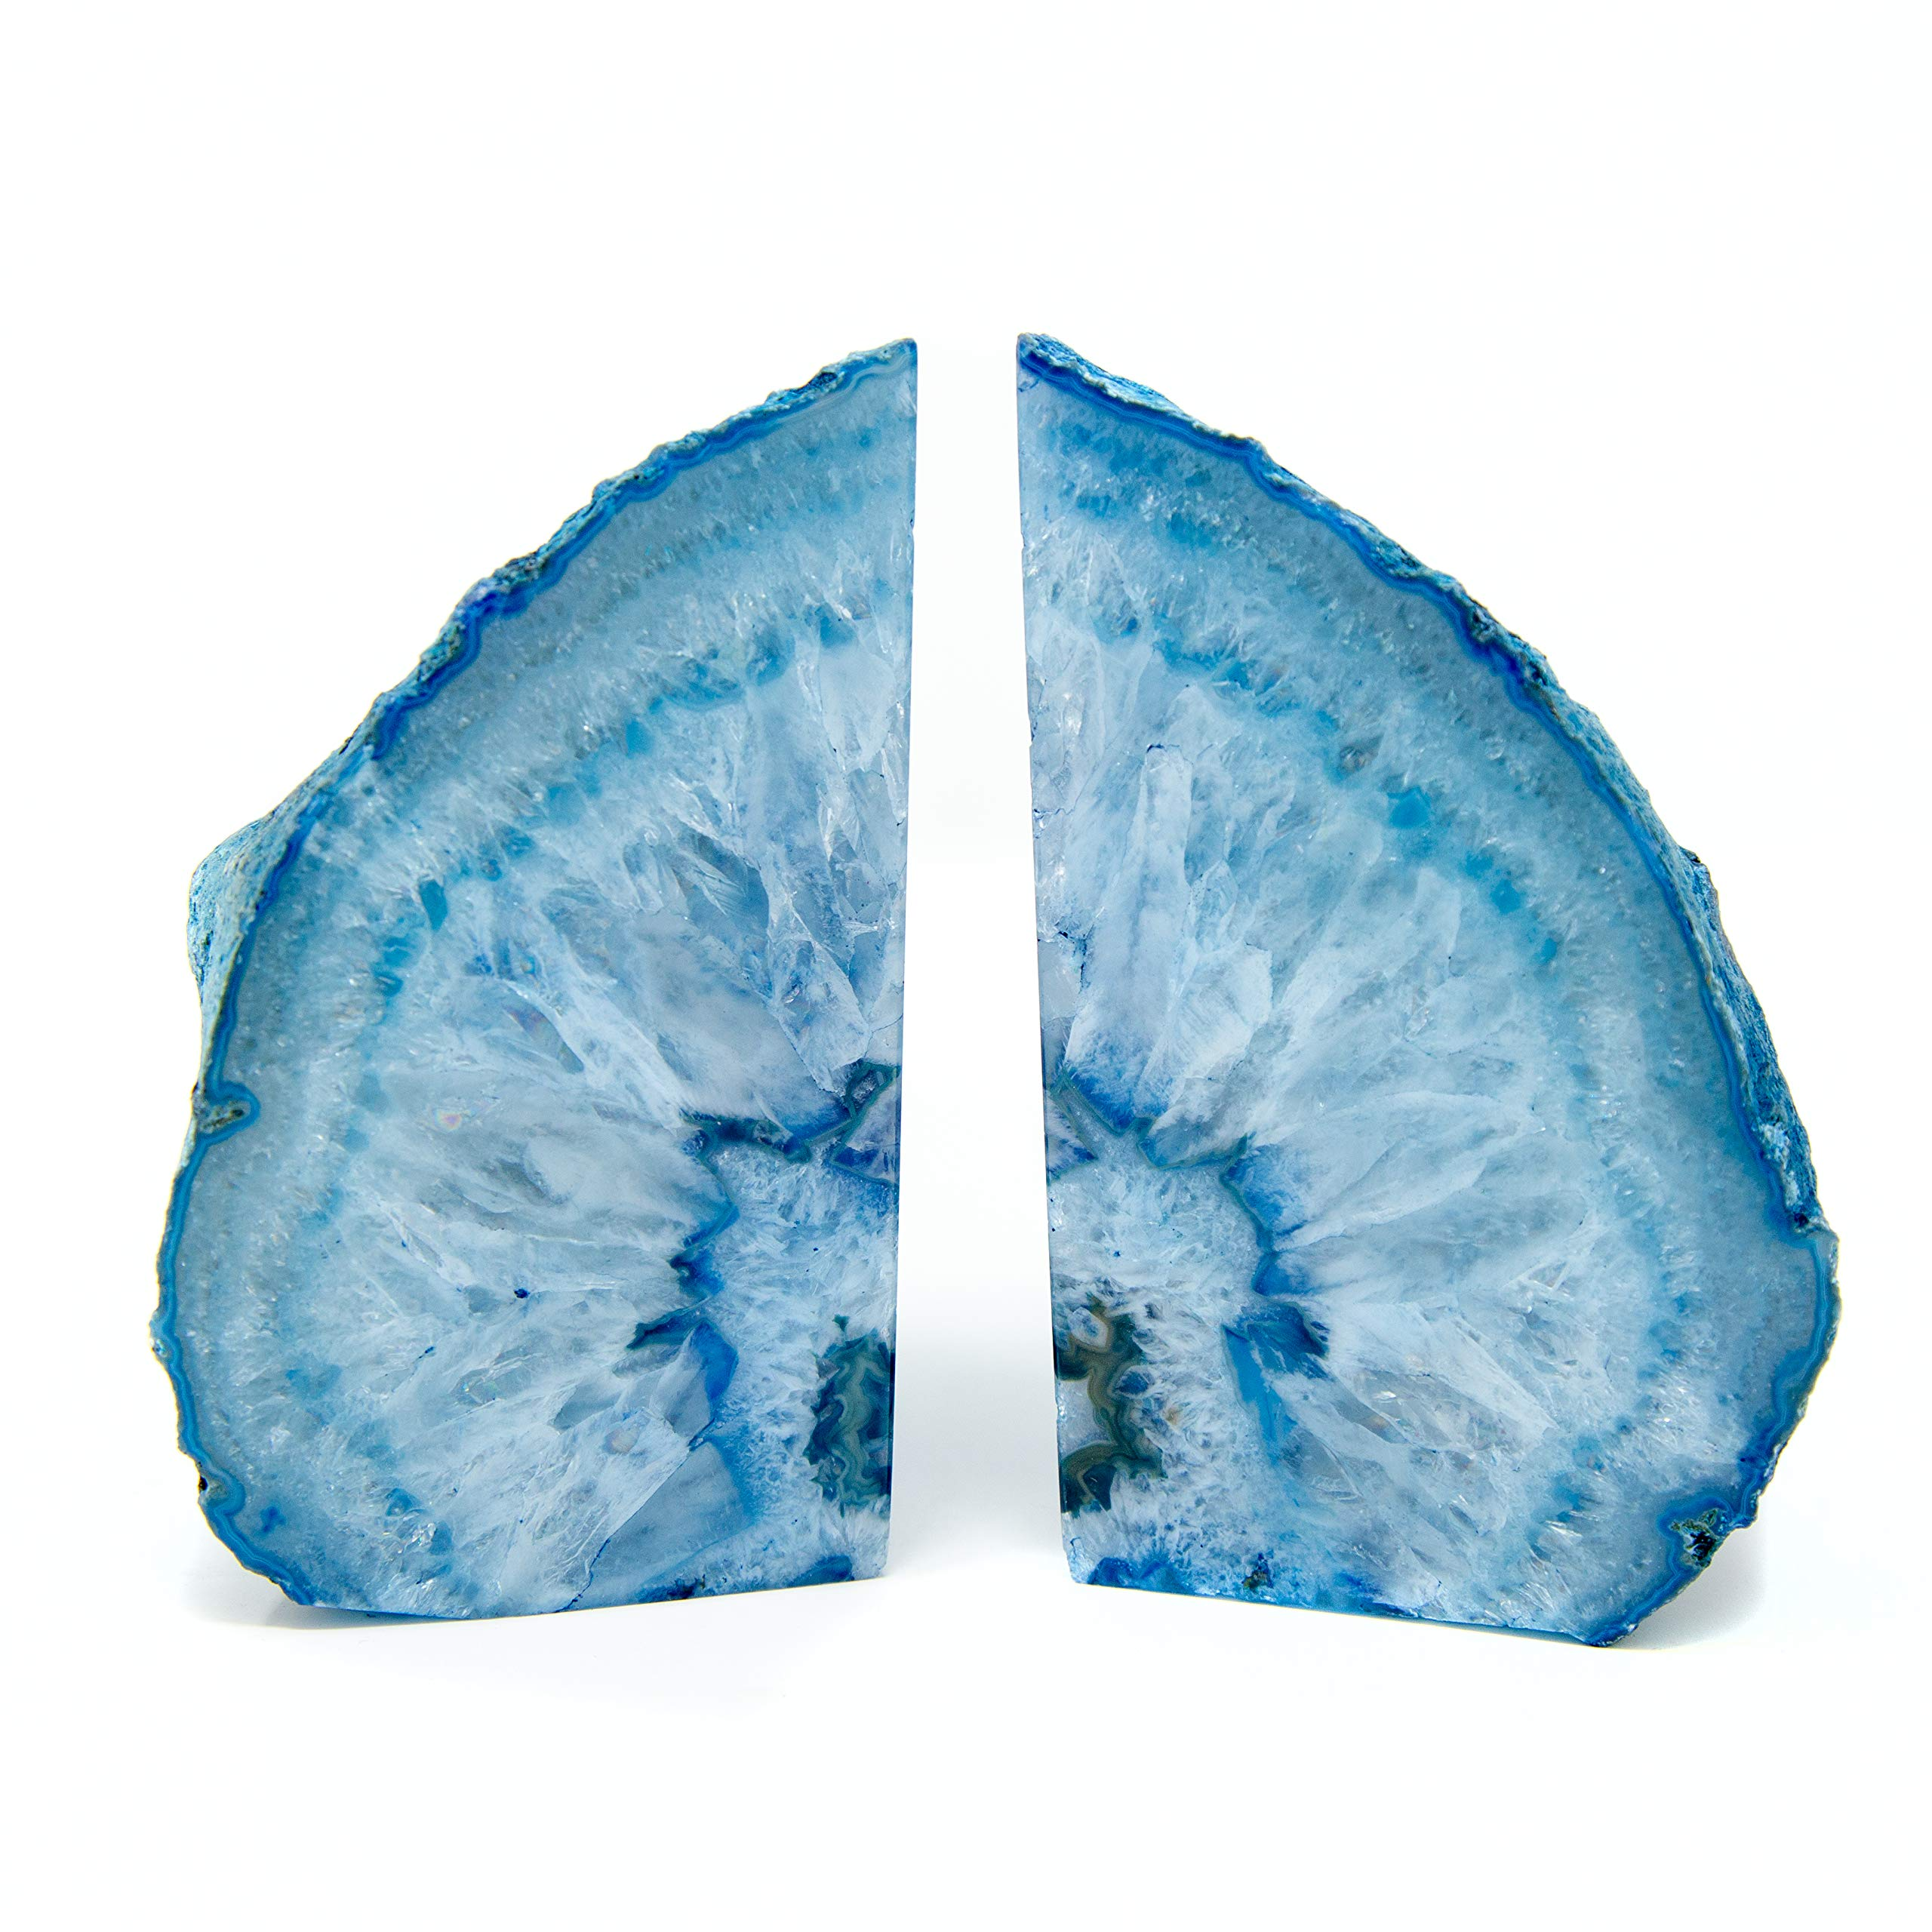 Legacy Of Nature Bookends: Pair Polished 100% Authentic Brazilian Agate Geode Halves Bookends w/Mystery Healing Stone (Blue, 2-4 Pounds) by Legacy Of Nature